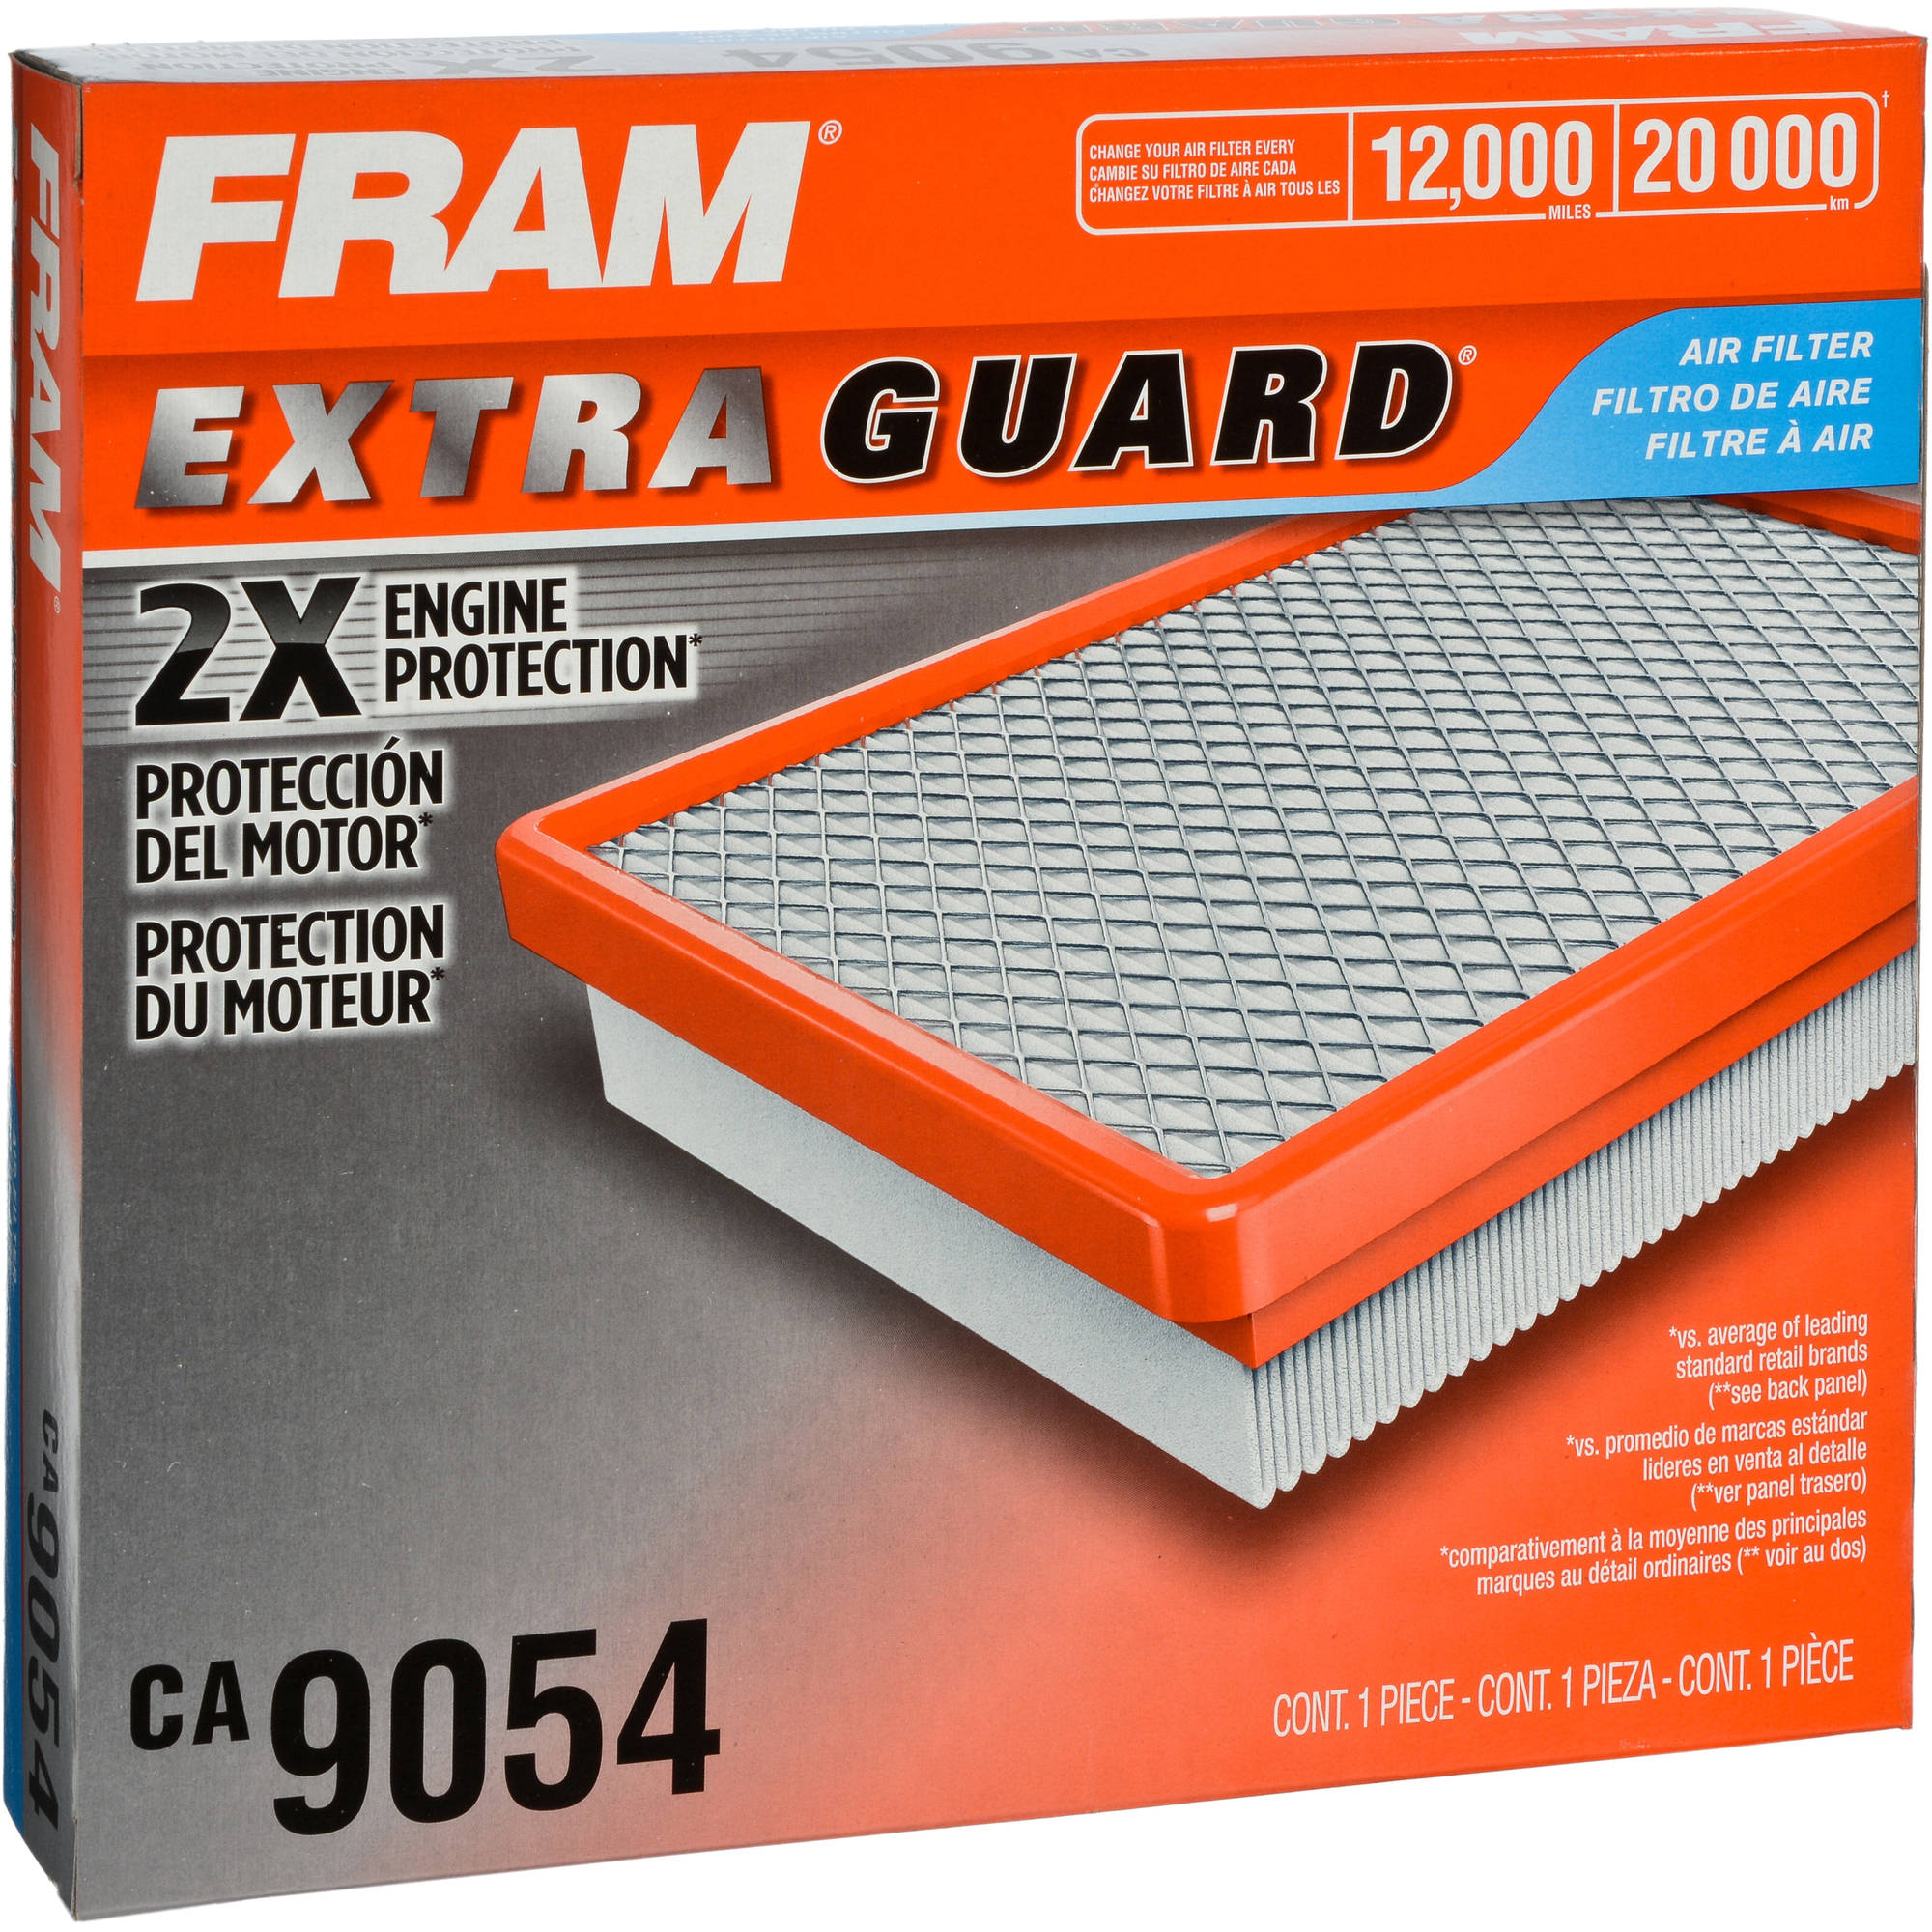 FRAM Extra Guard Air Filter, CA9054